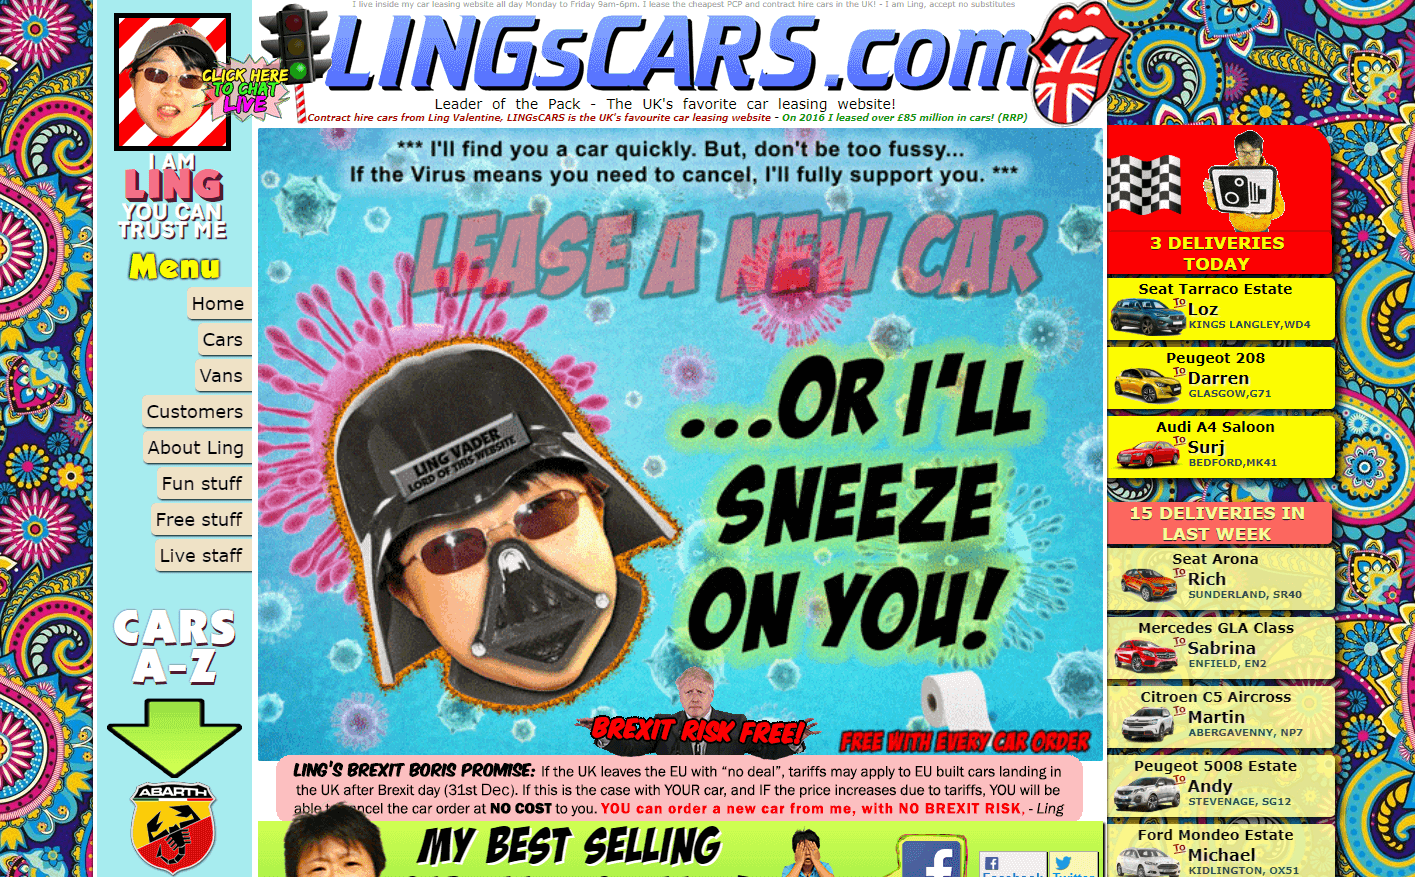 Lingscars as an example pf a bad website